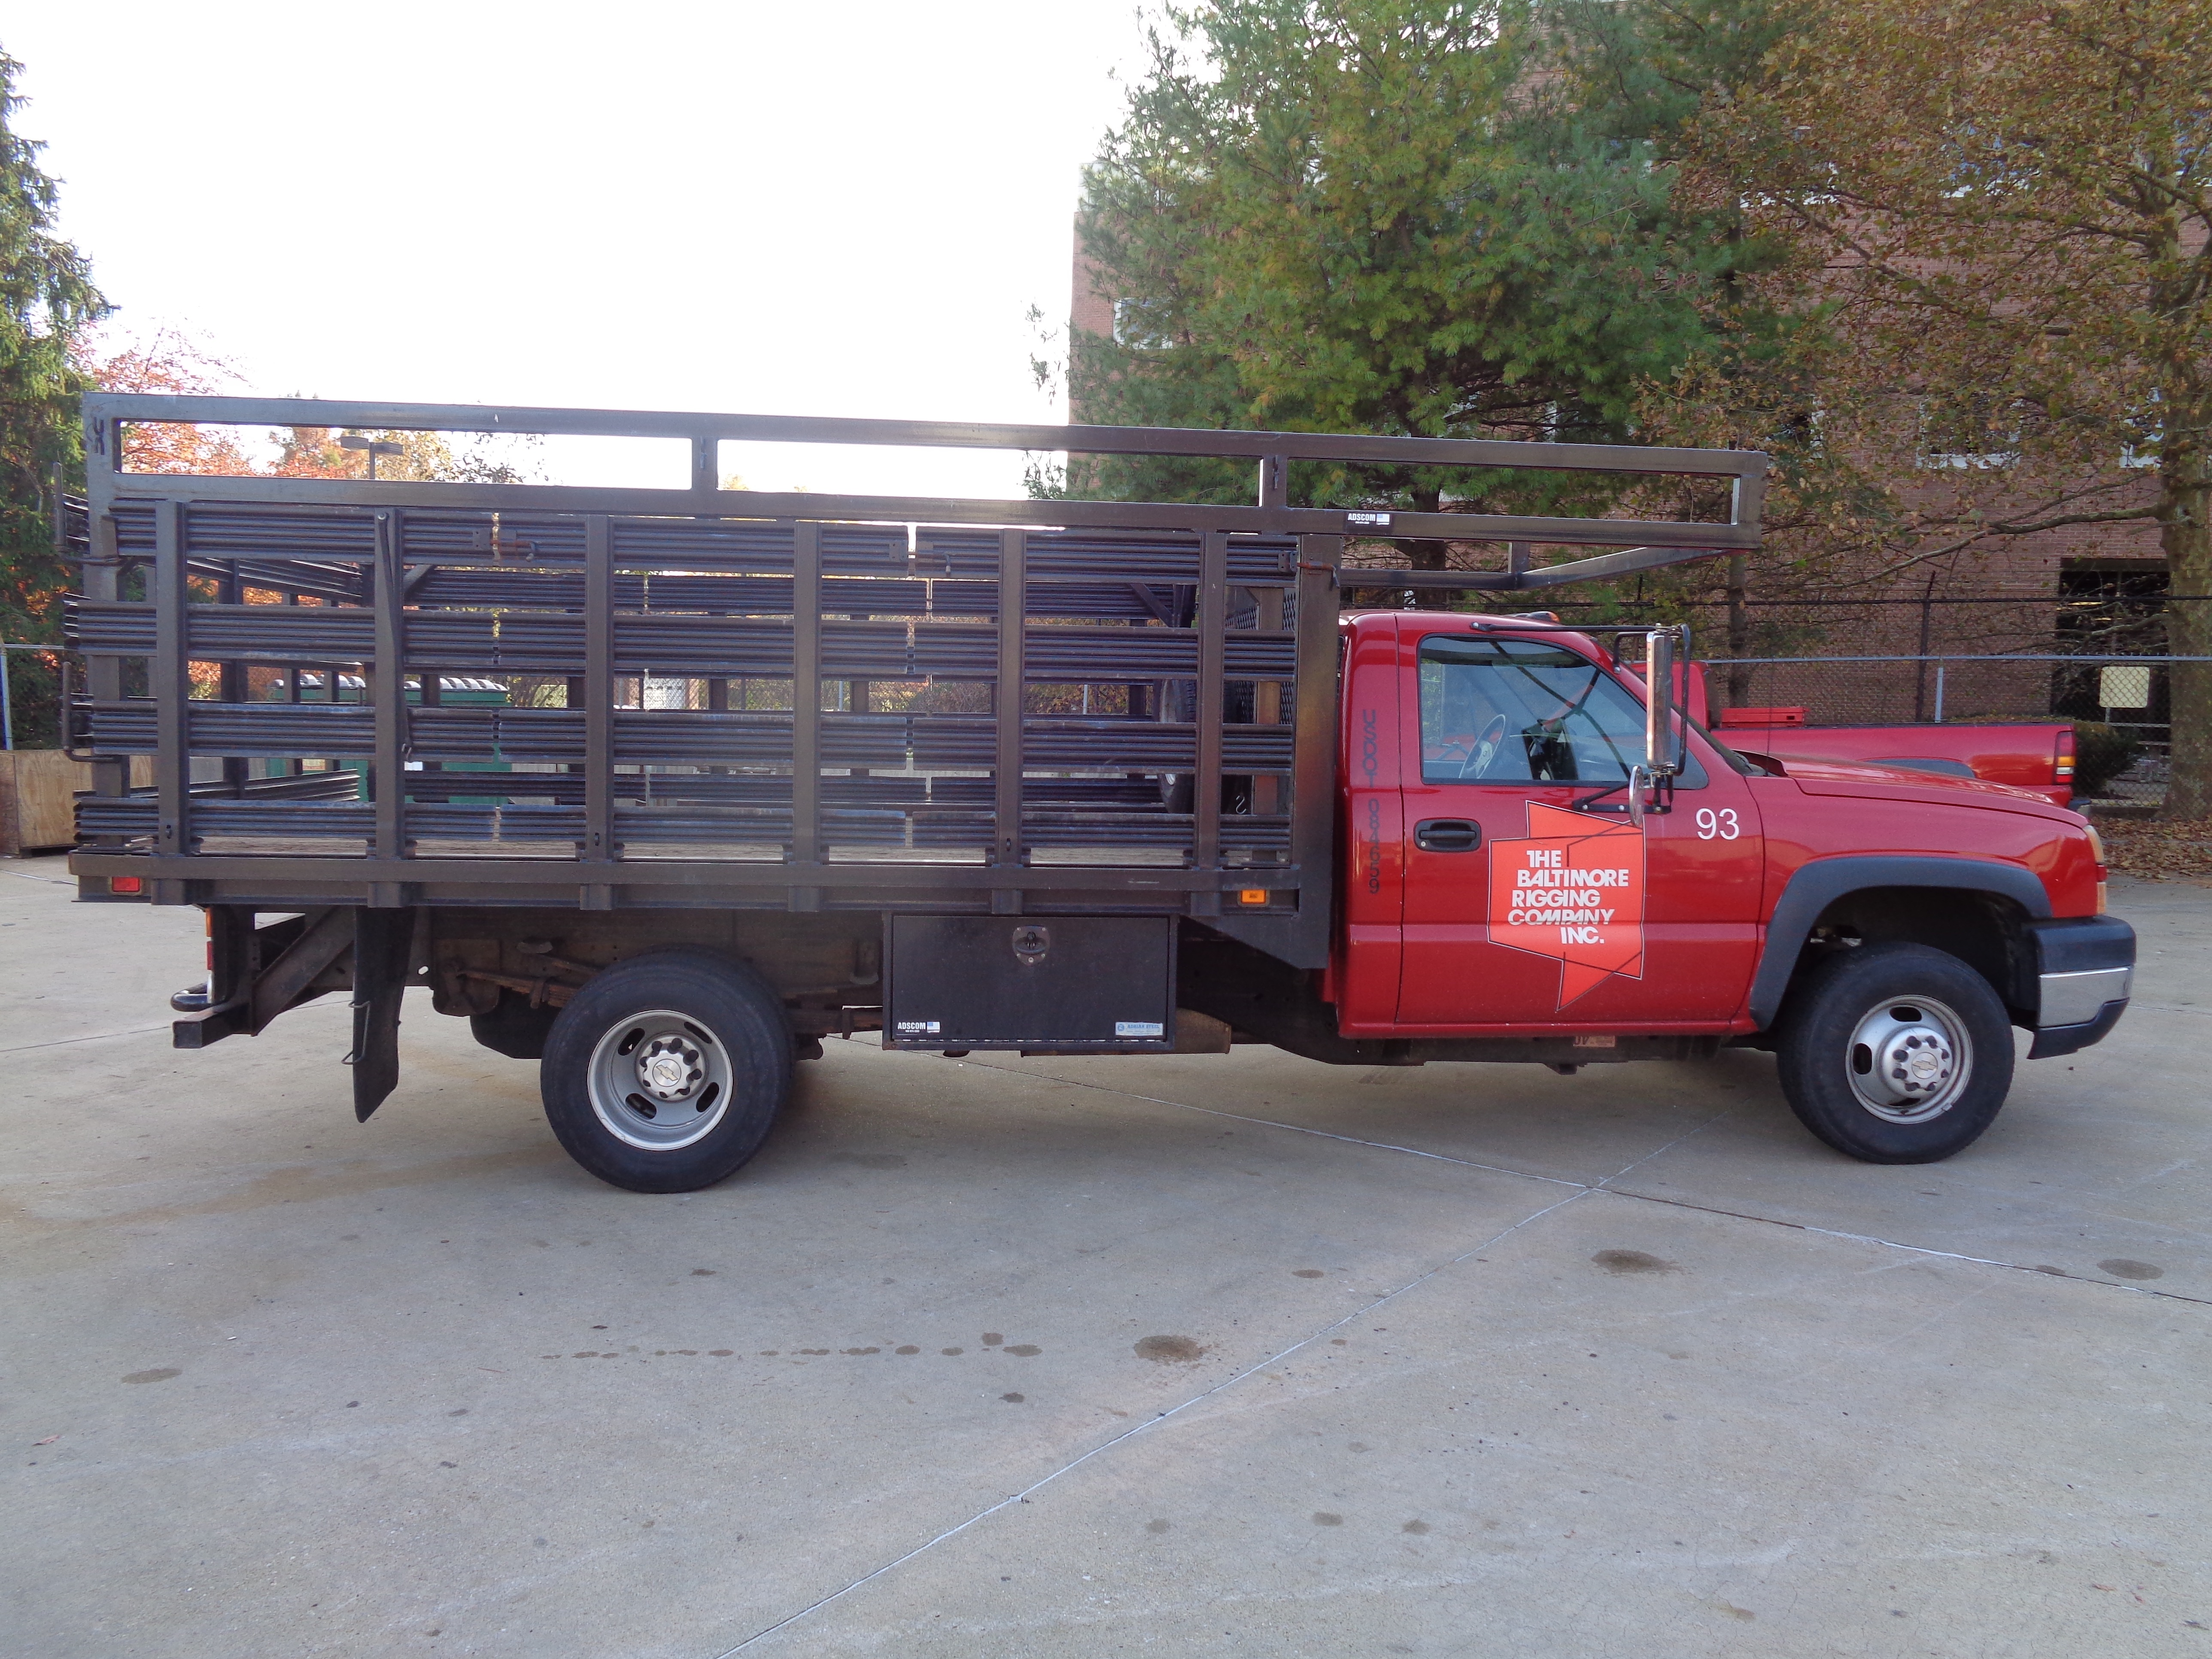 2006 Chevy 3500 Stake Pick-Up Truck - Image 4 of 9